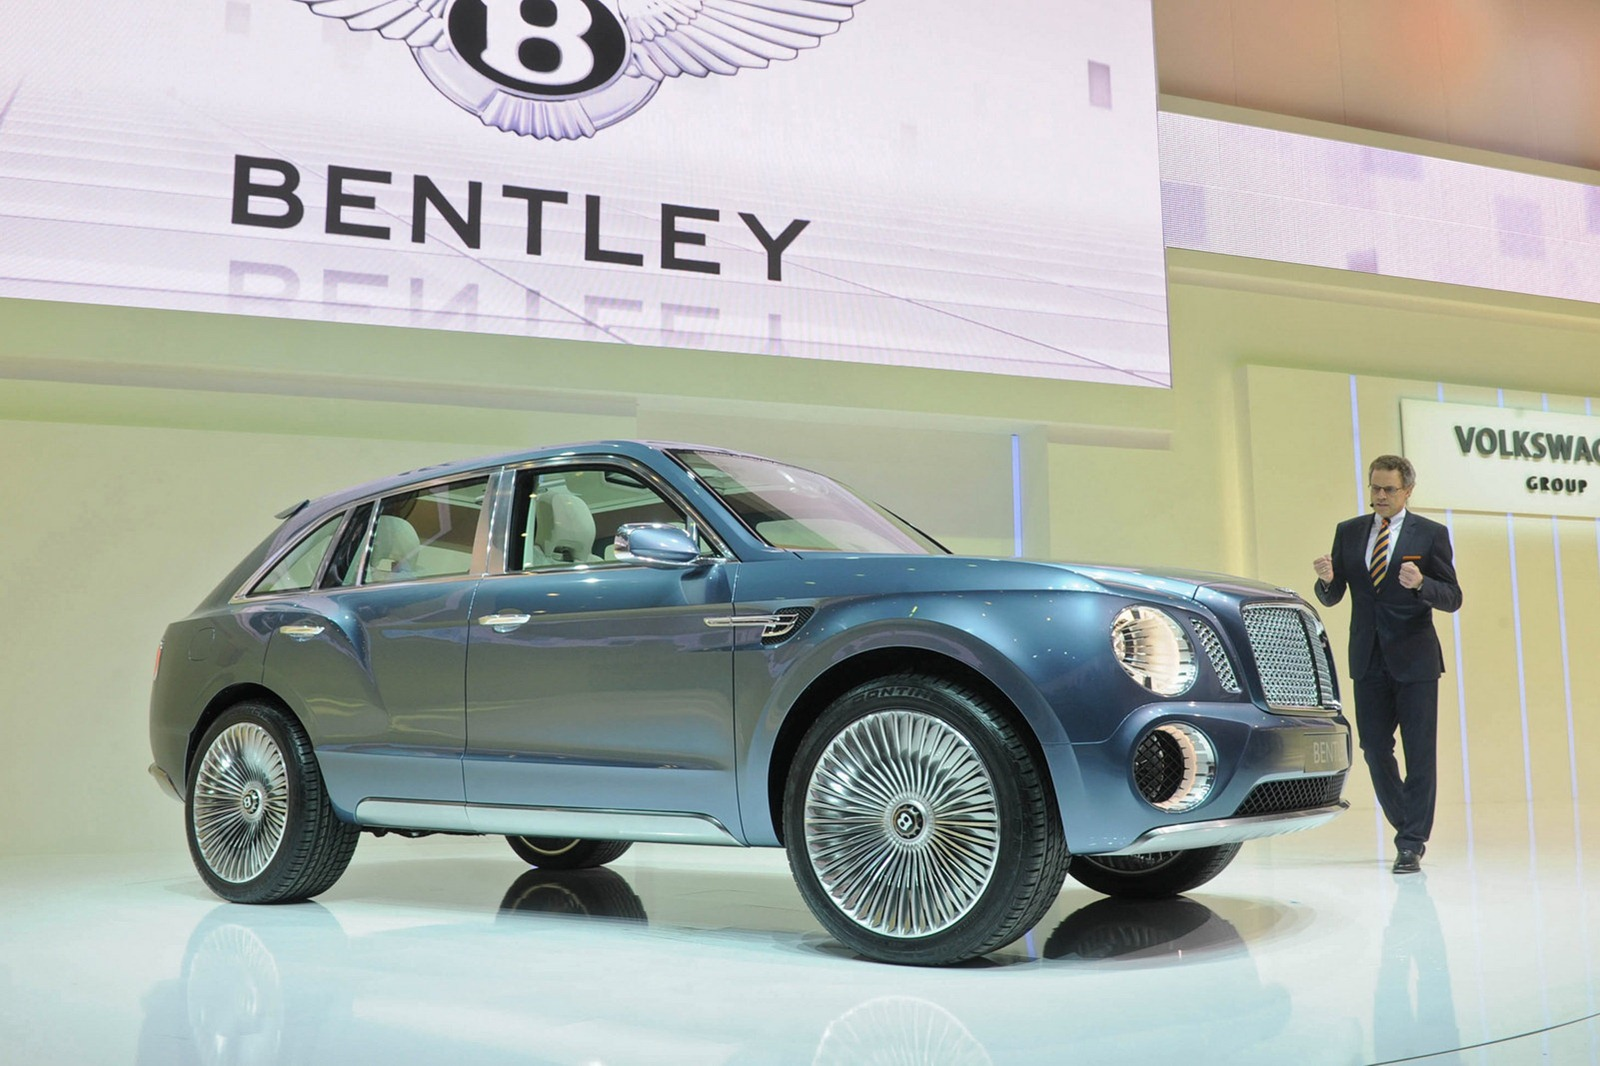 Bentley Suv Gets Go Ahead From Vw Teased In Video